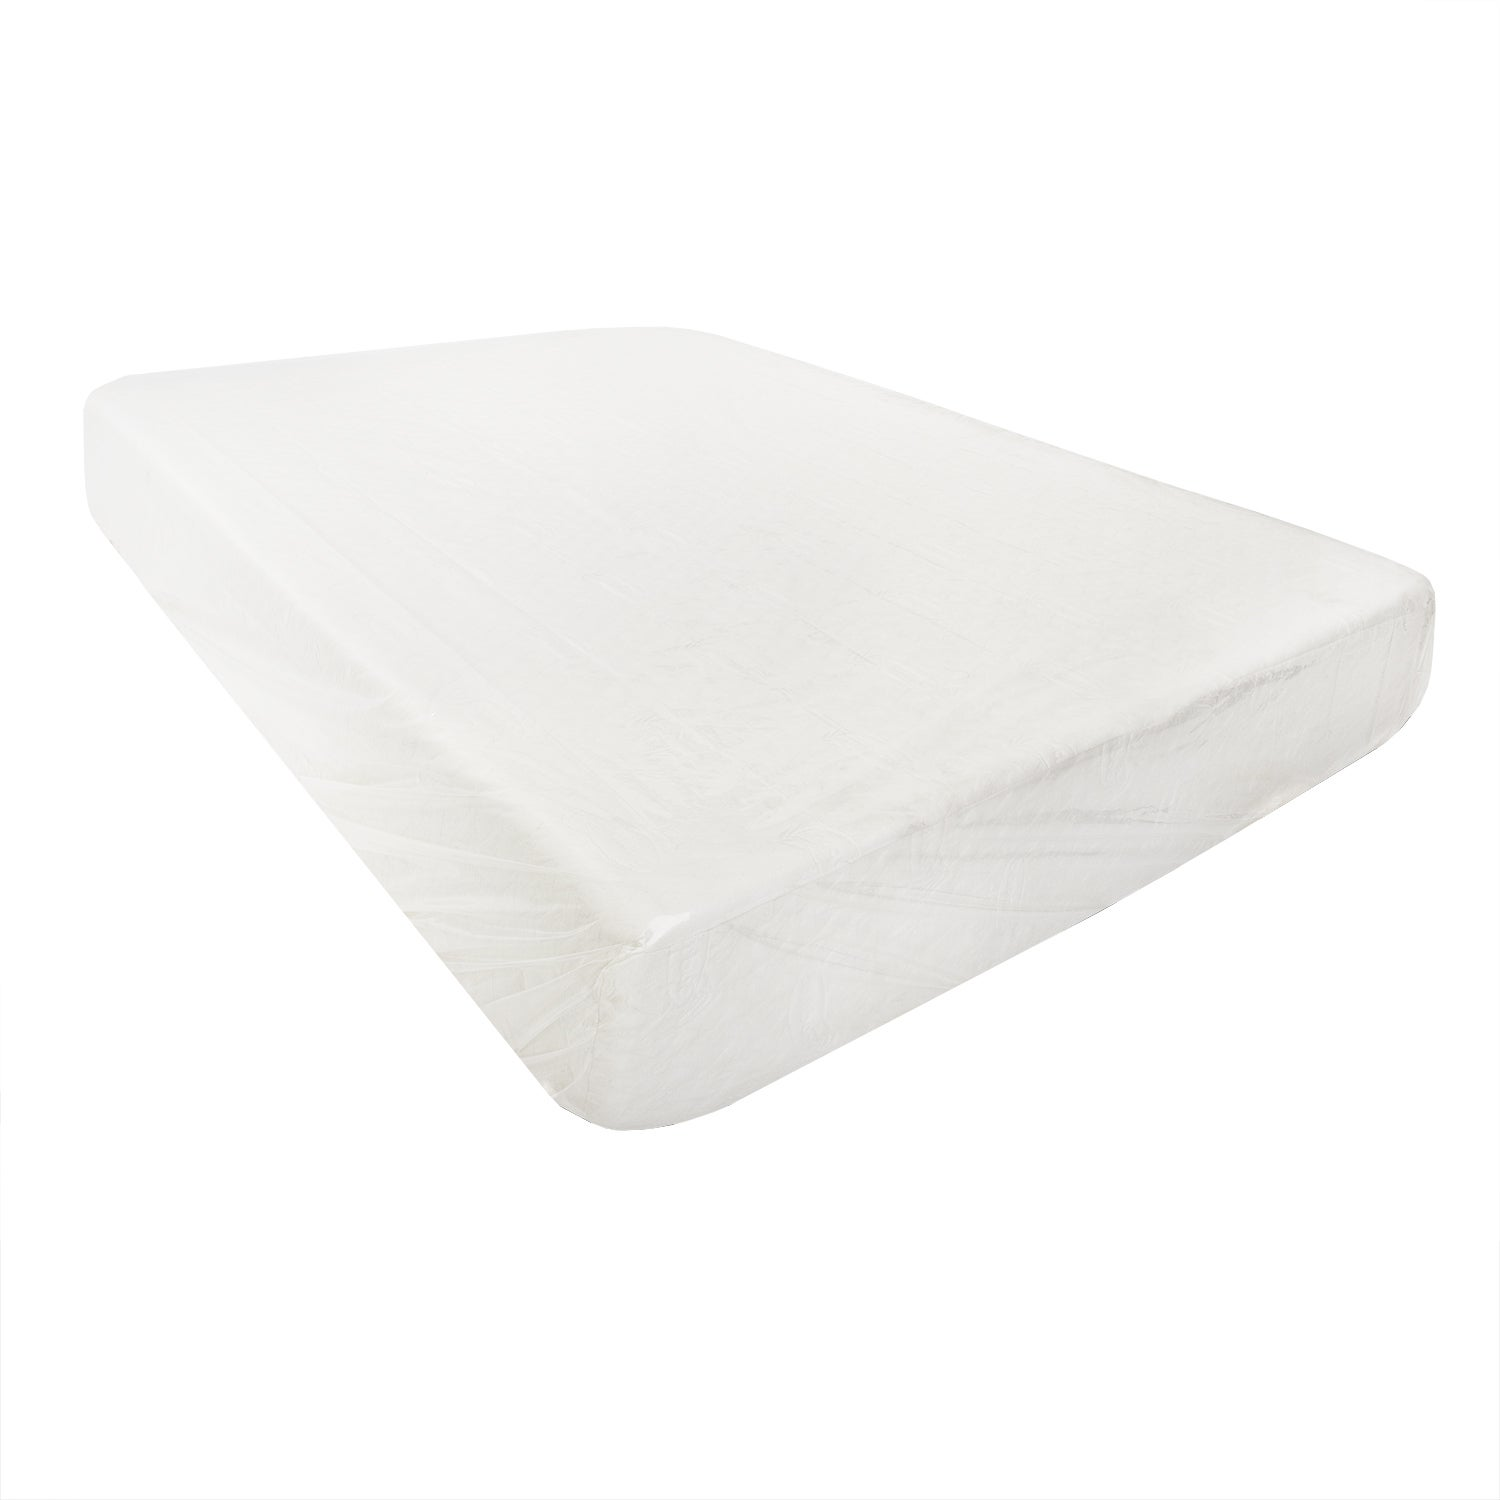 Shop Seal Tite Heavy-Duty Sealable Mattress Storage Bag - Free Shipping On Orders Over $45 - Overstock.com - 10756035  sc 1 st  Overstock.com & Shop Seal Tite Heavy-Duty Sealable Mattress Storage Bag - Free ...